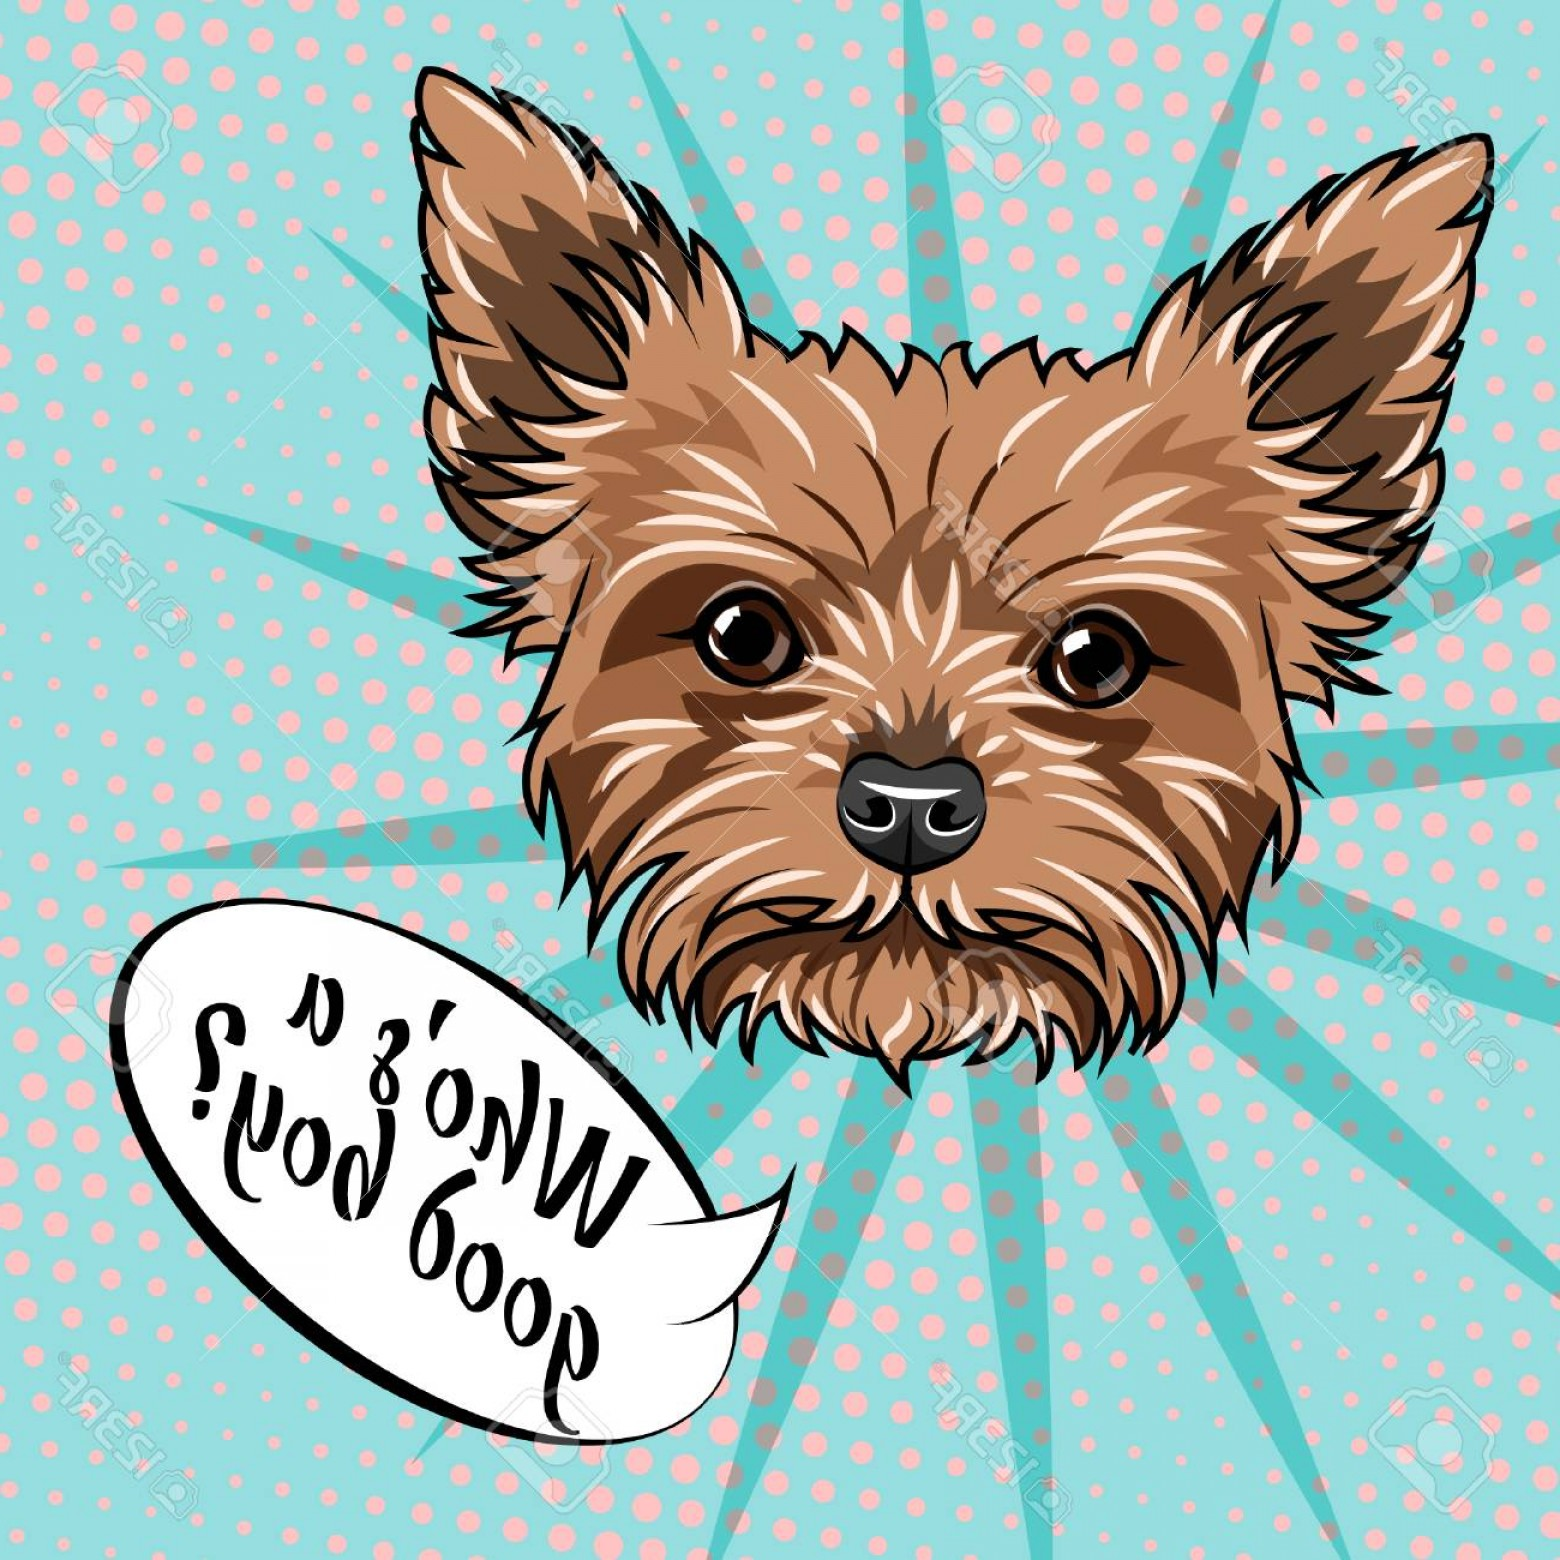 Cute Yorkie Dog Vector: Photostock Vector Yorkshire Terrier Dog Who Is Good Boy Lettering Dog Cute Portrait Dog Breed Vector Illustration